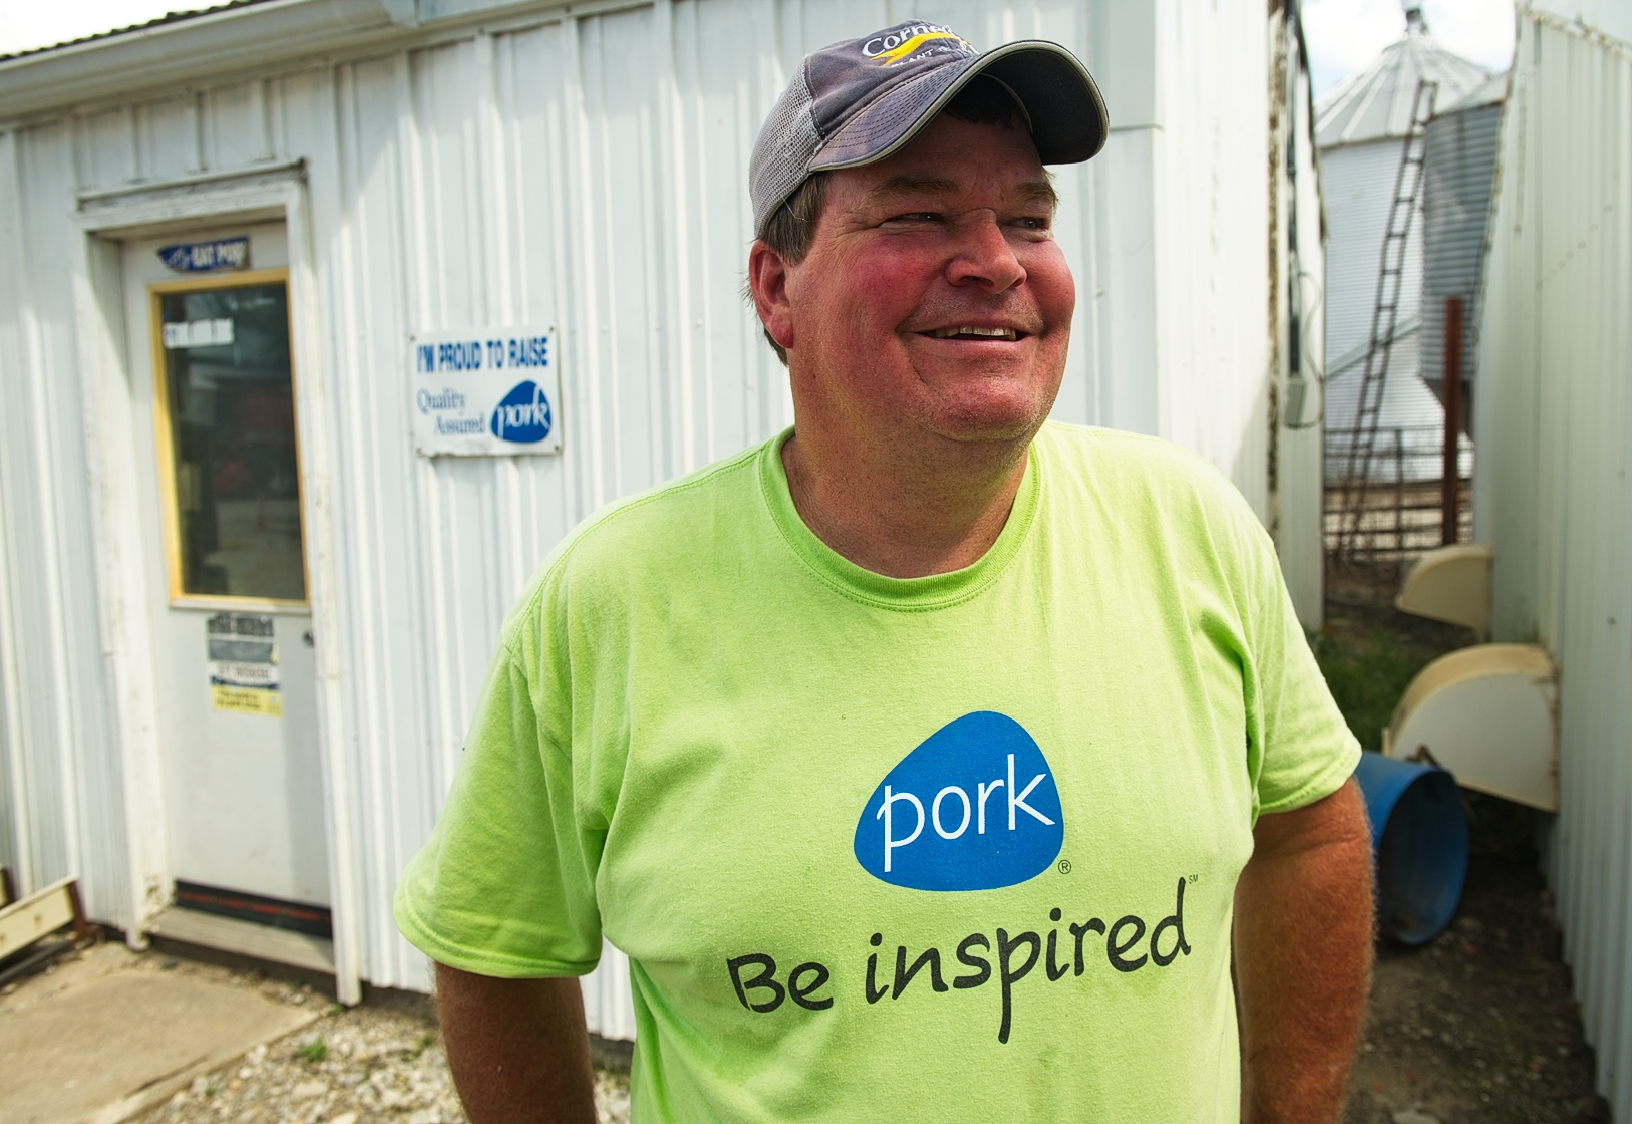 Dave Struthers, a pig, soybean and corn farmer in Collins, helped bring to light the continuous and sustainable cycle of raising pigs and growing crops for livestock feed. Photo credit: Joseph L. Murphy/Iowa Soybean Association